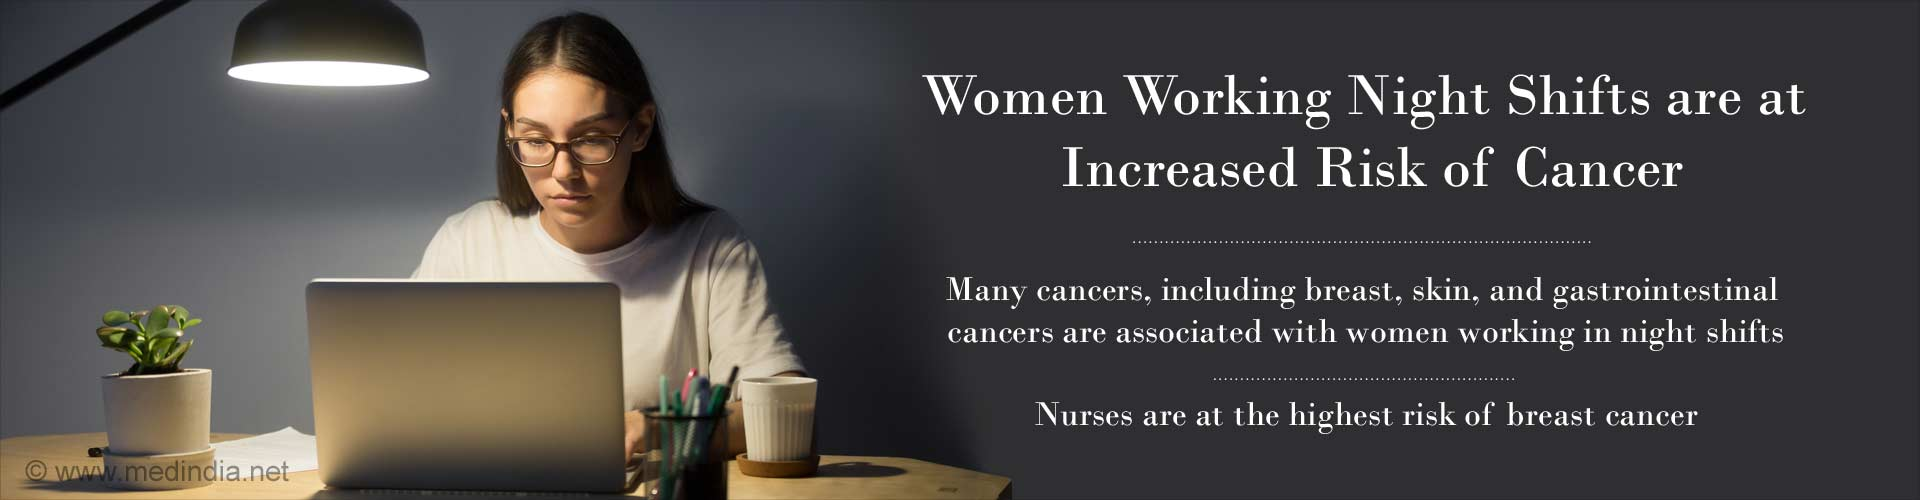 women working night shifts are at increased risk of cancer